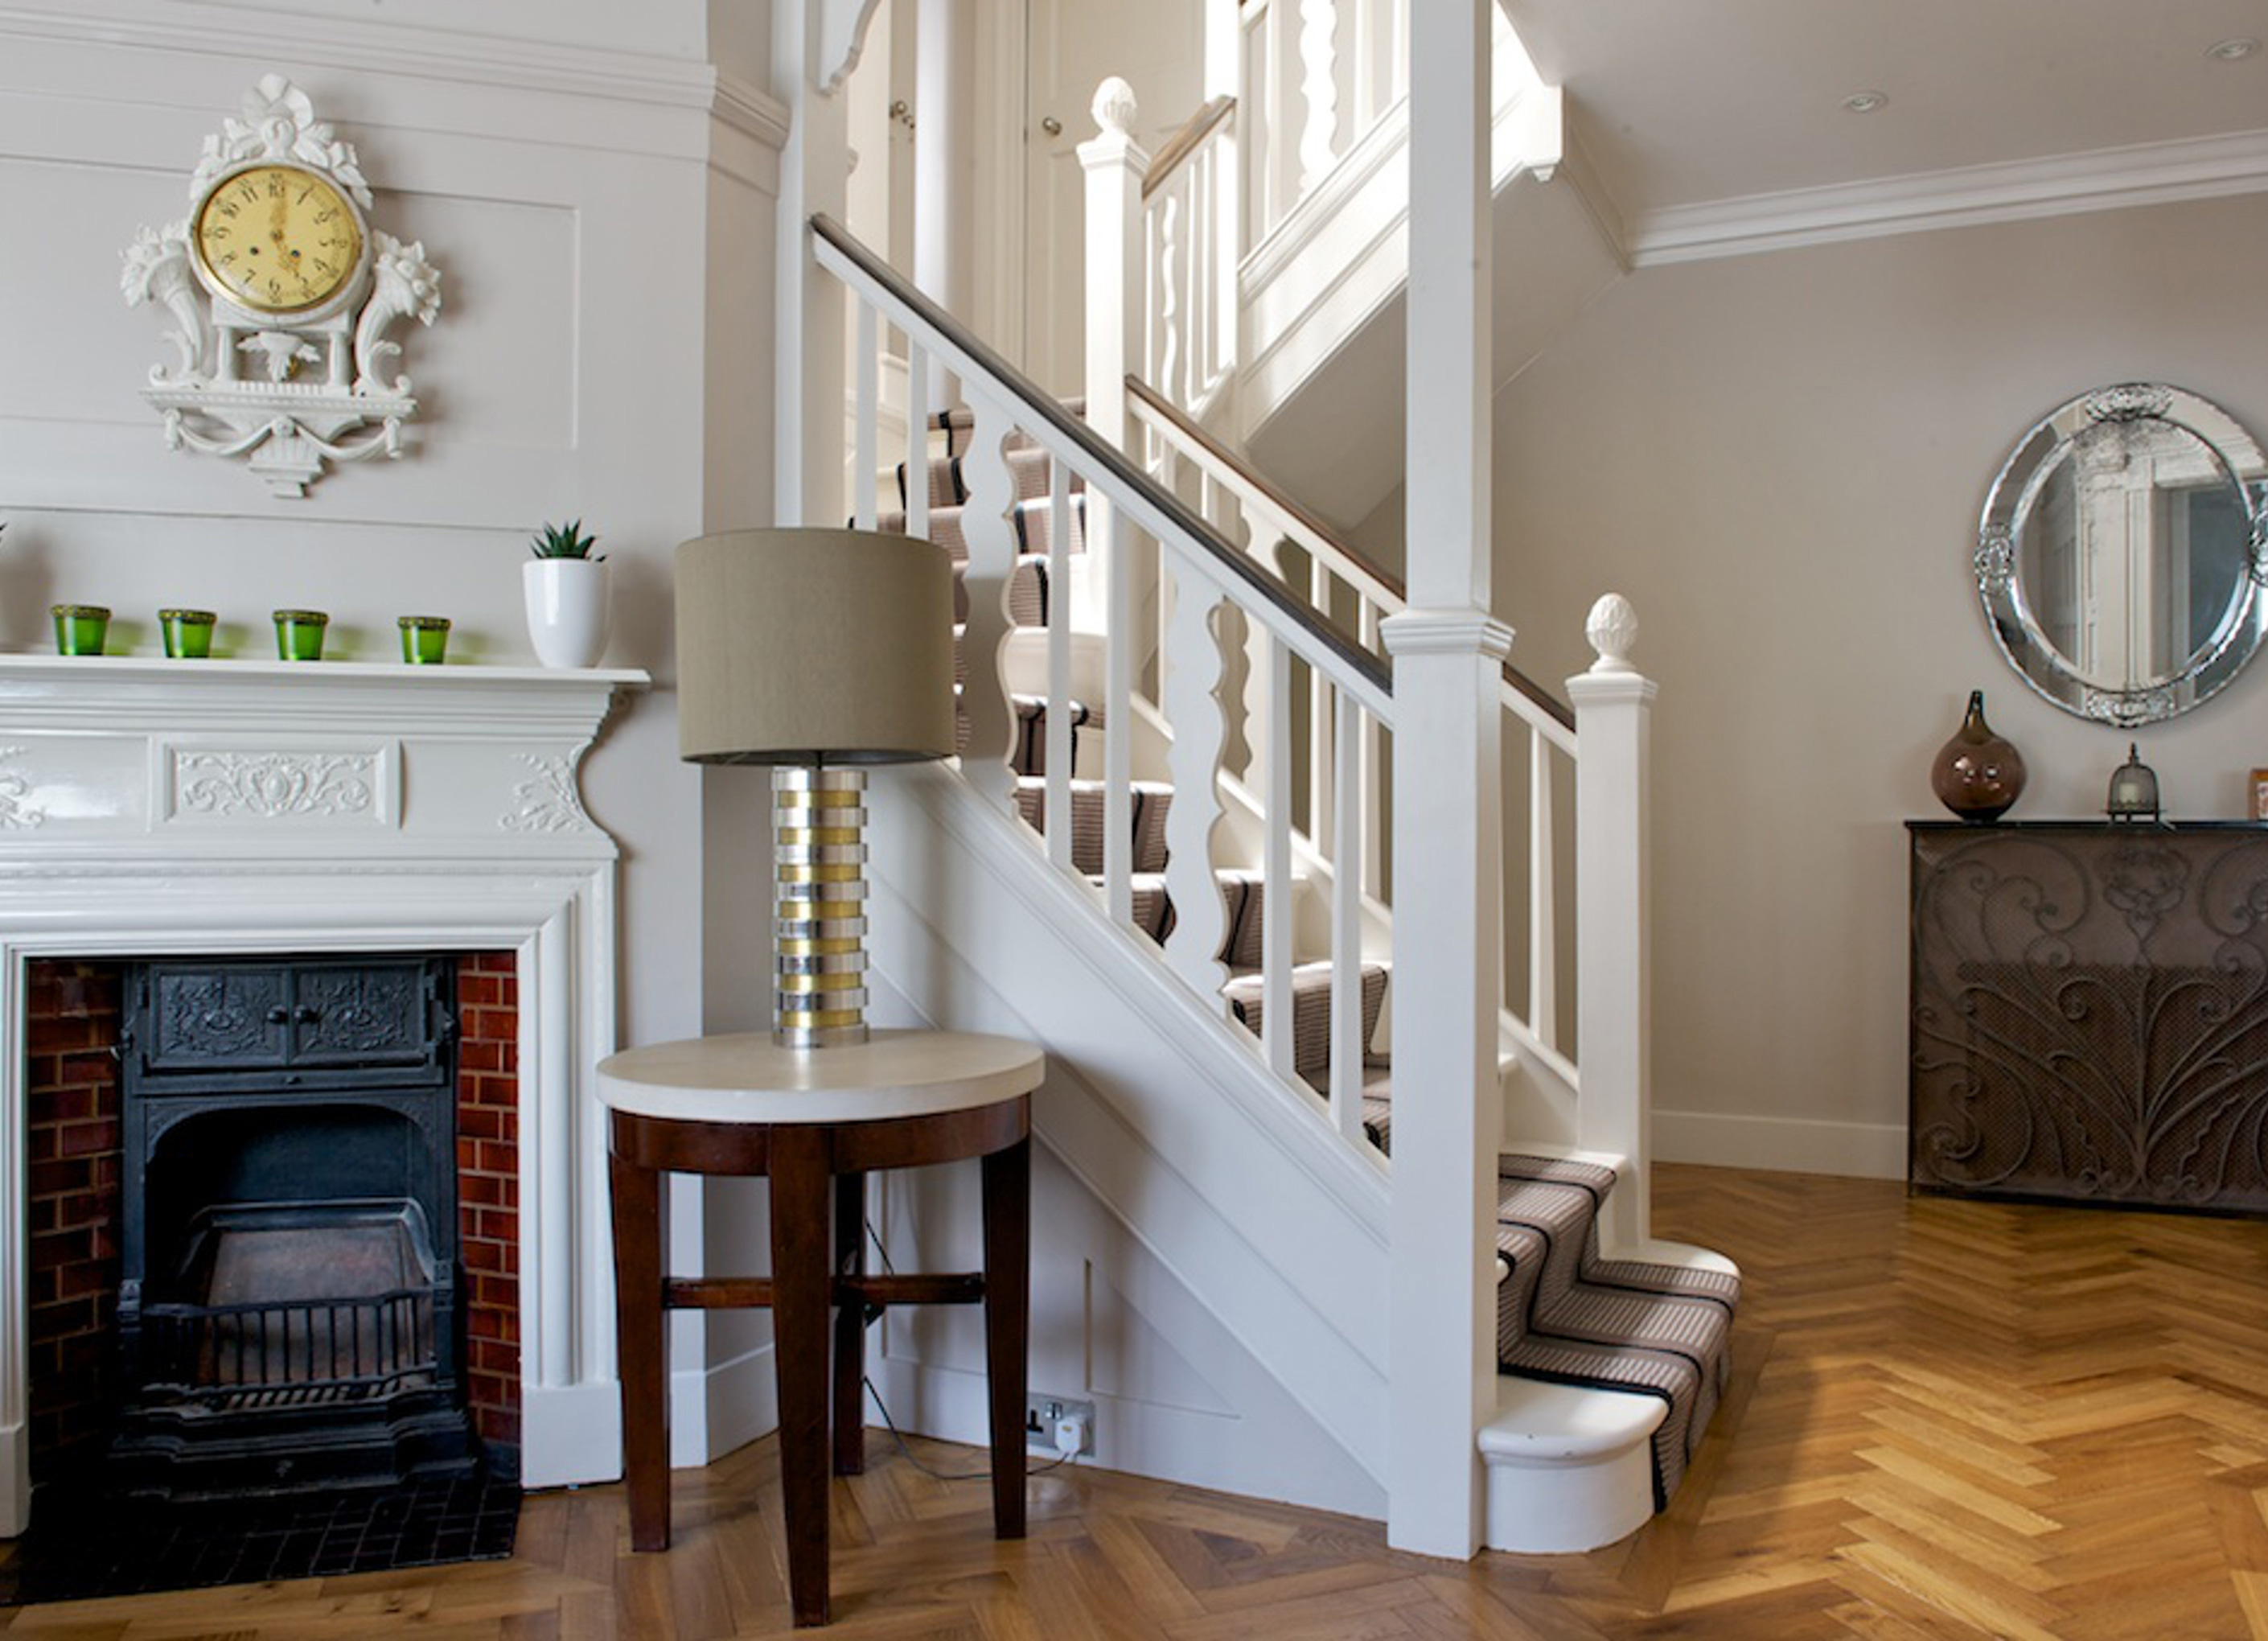 oak landmark dalton herringbone with staircase and traditional fireplace and mirror